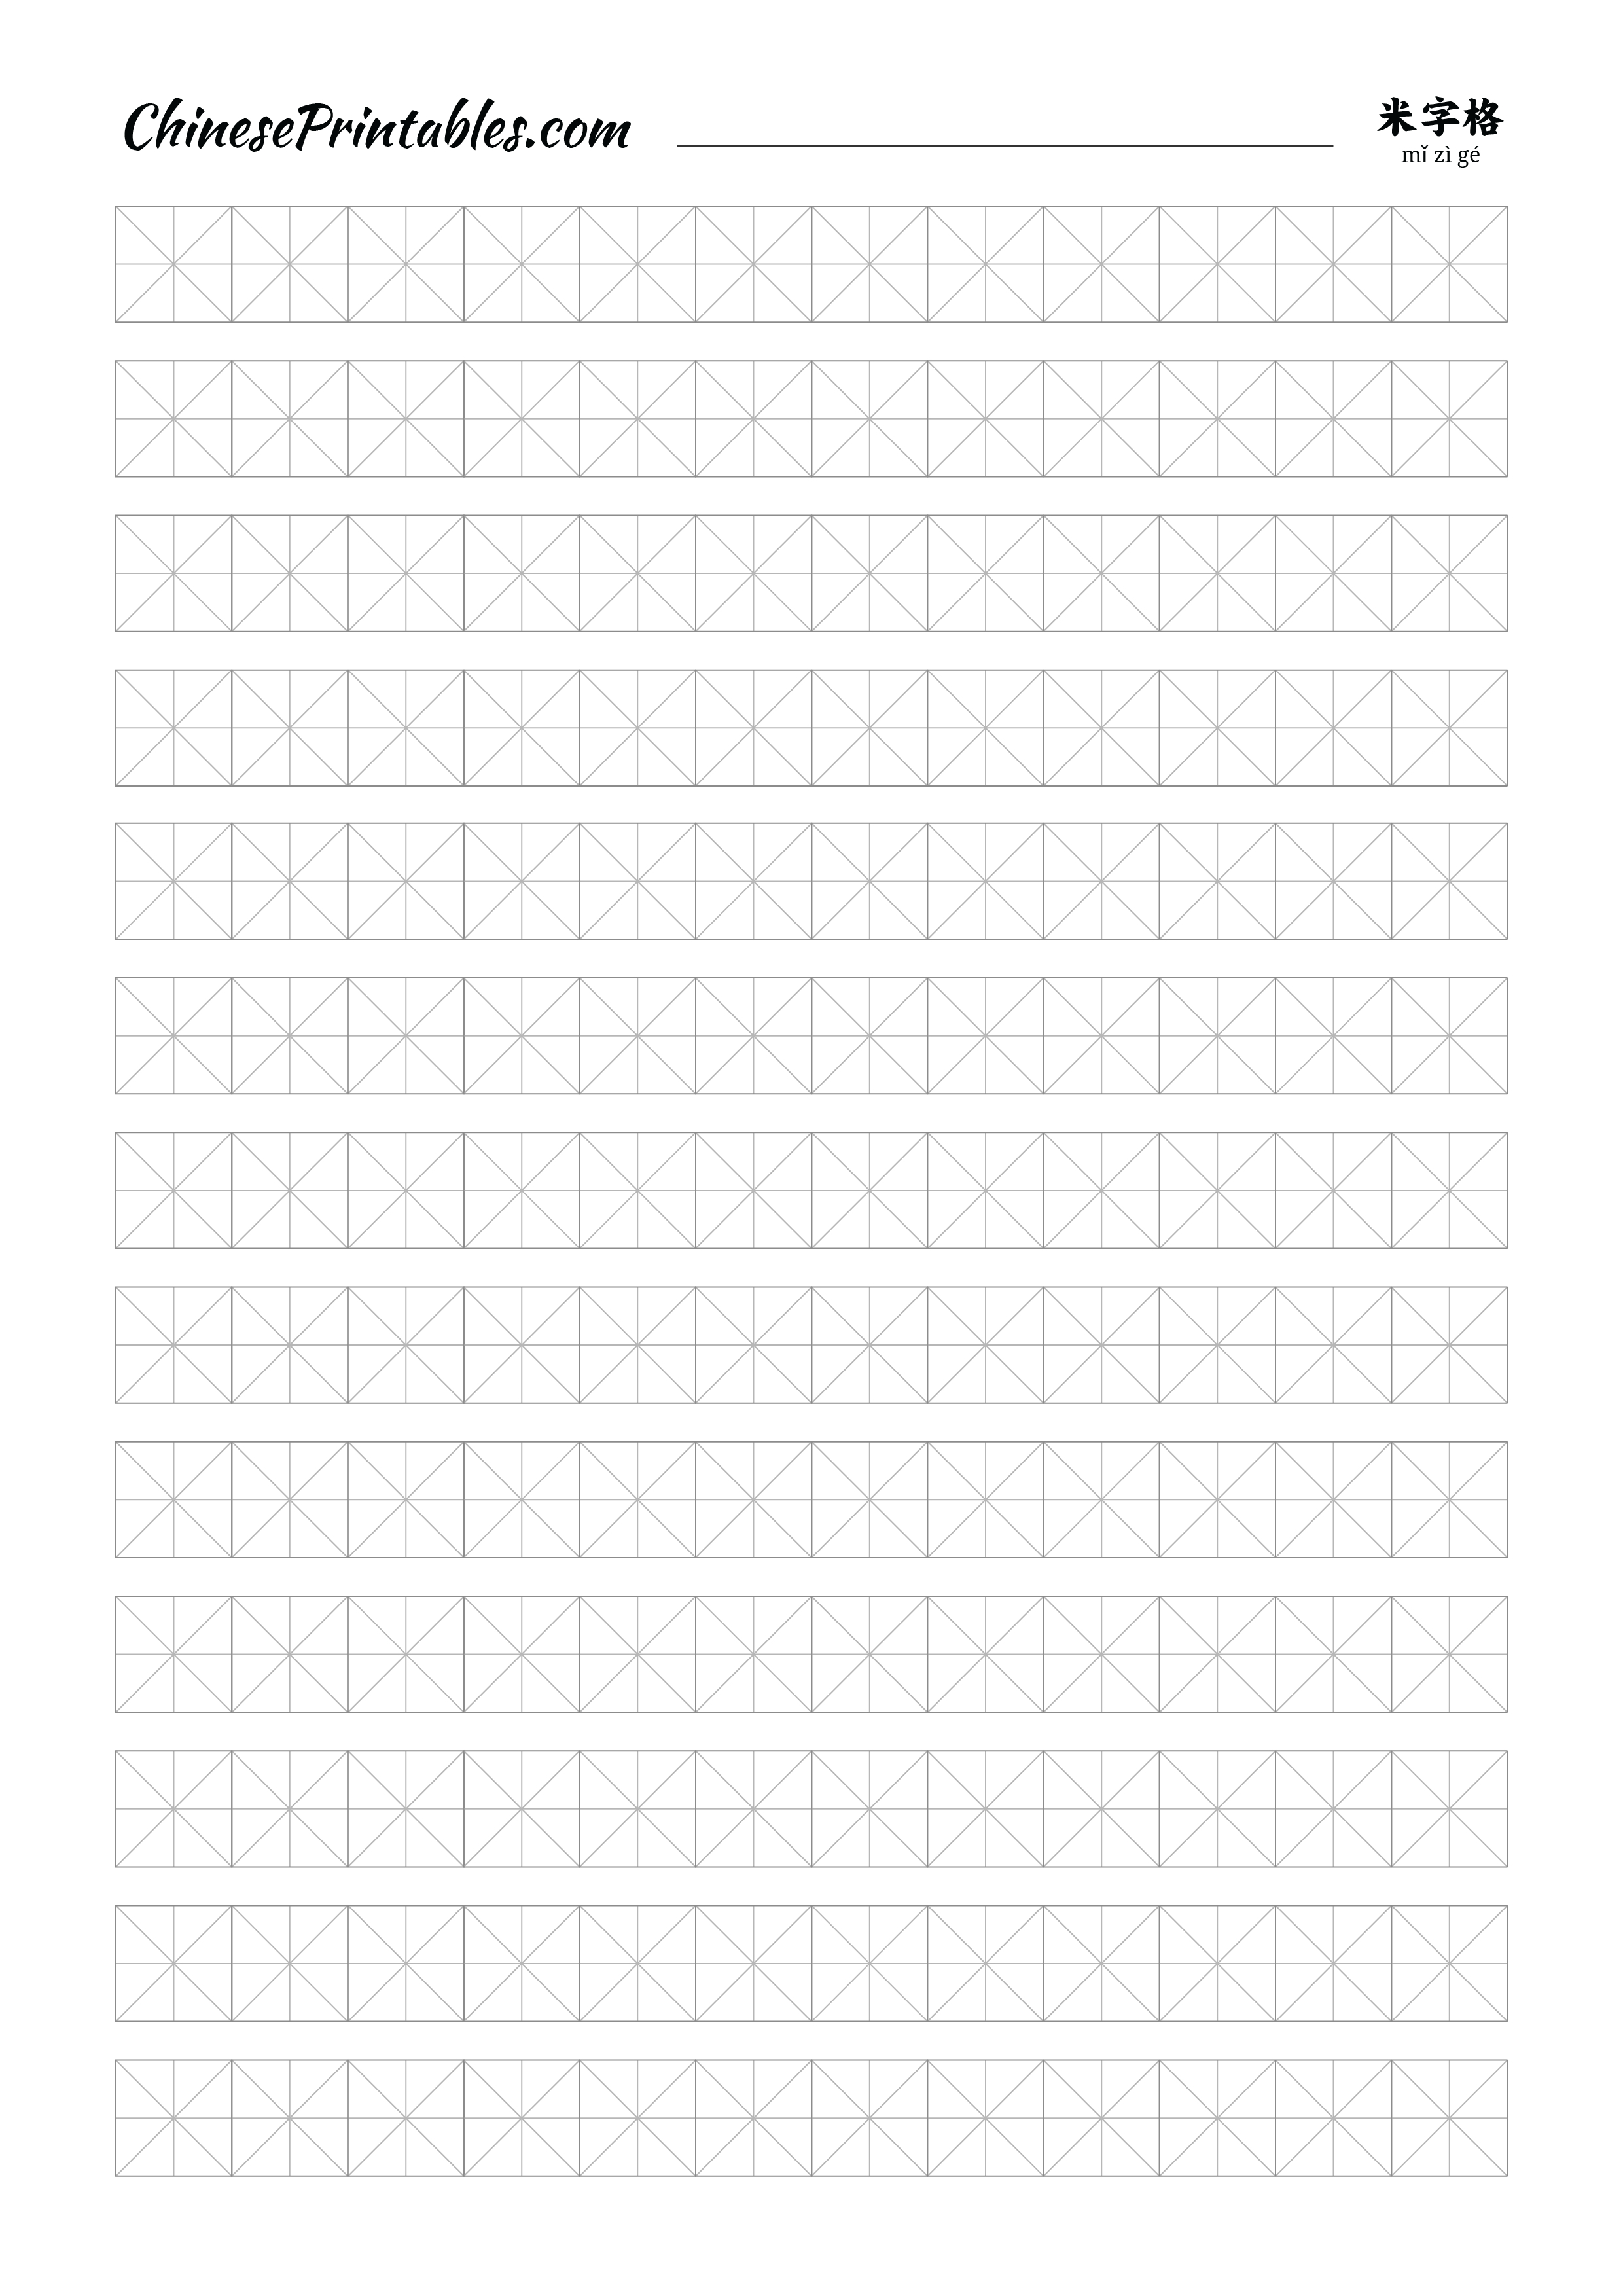 Chinese Printables - Free Printable Resources To Help You Write - Free Printable Squared Paper